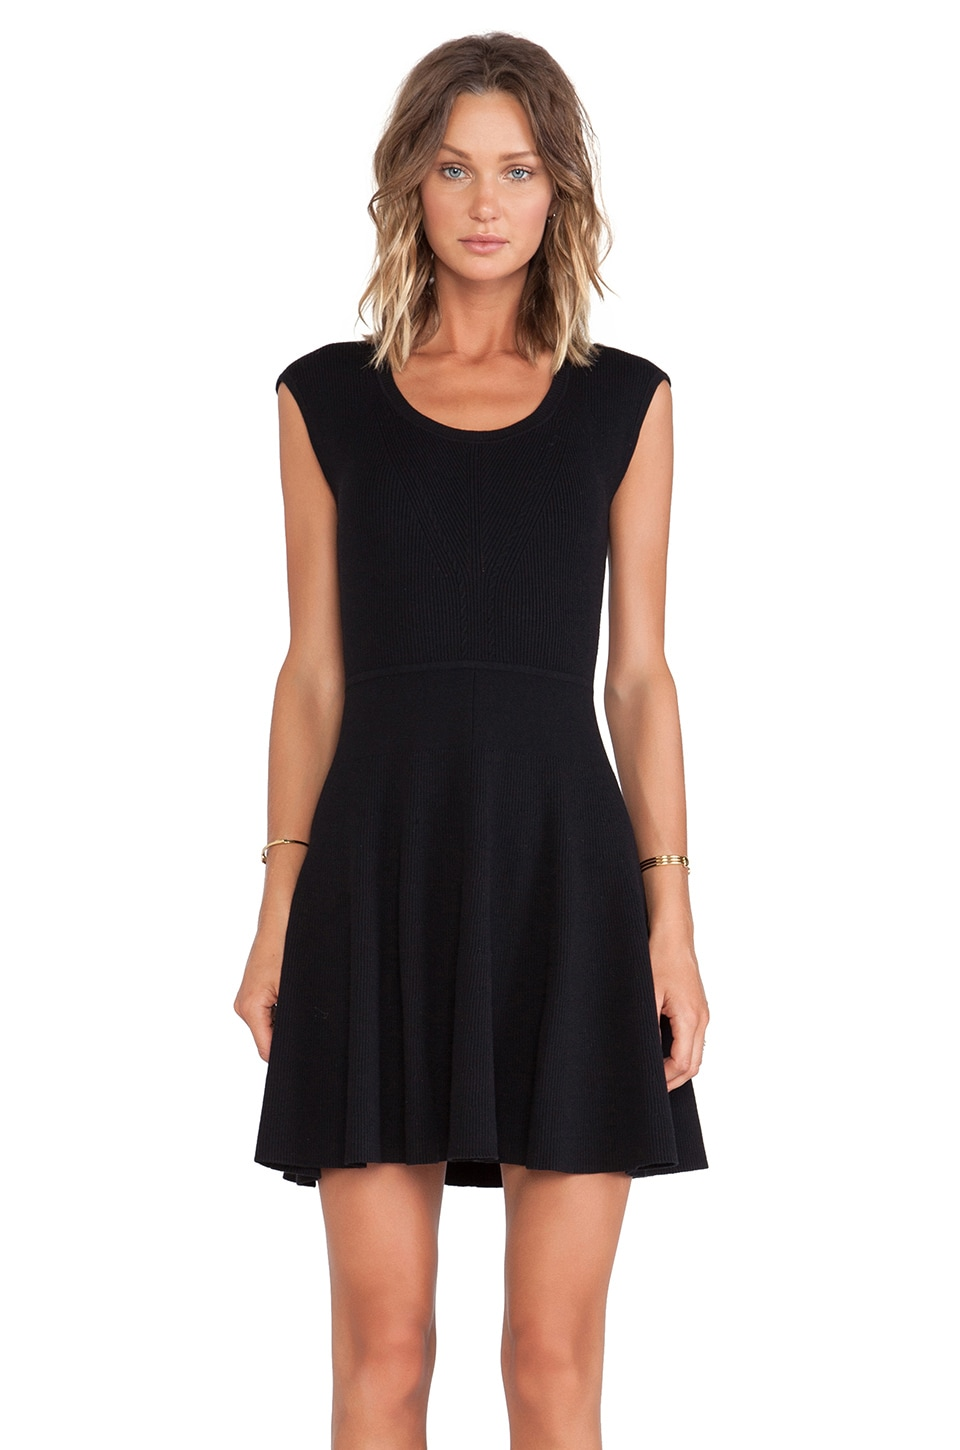 Marc by Marc Jacobs Wanda Sweater Dress in Black